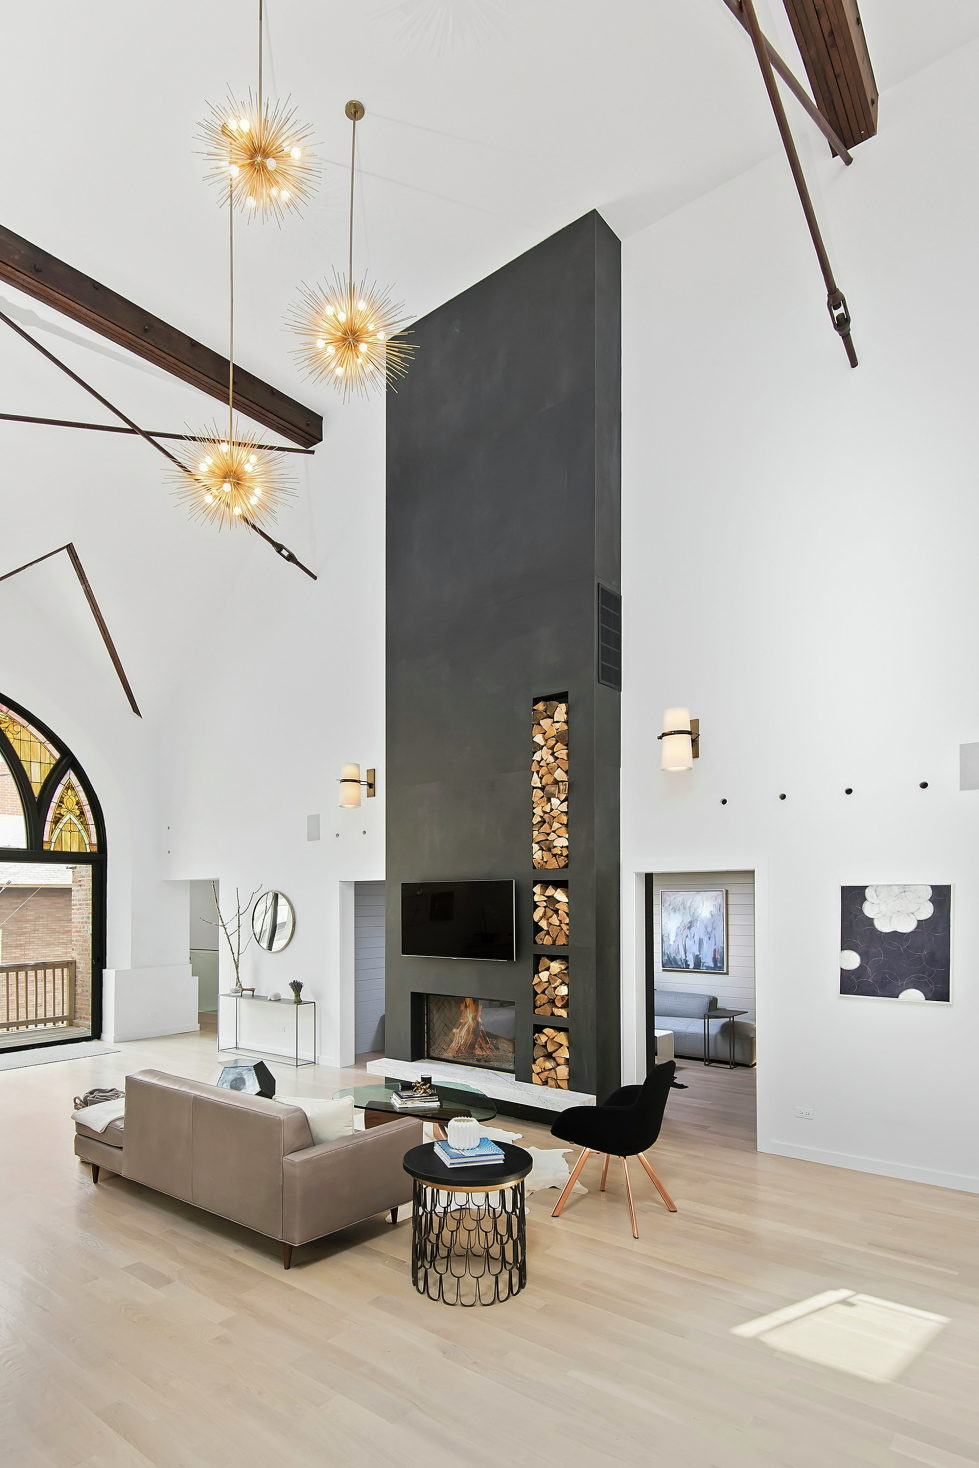 Conversion Of The Former Church Into The House In Chicago 2